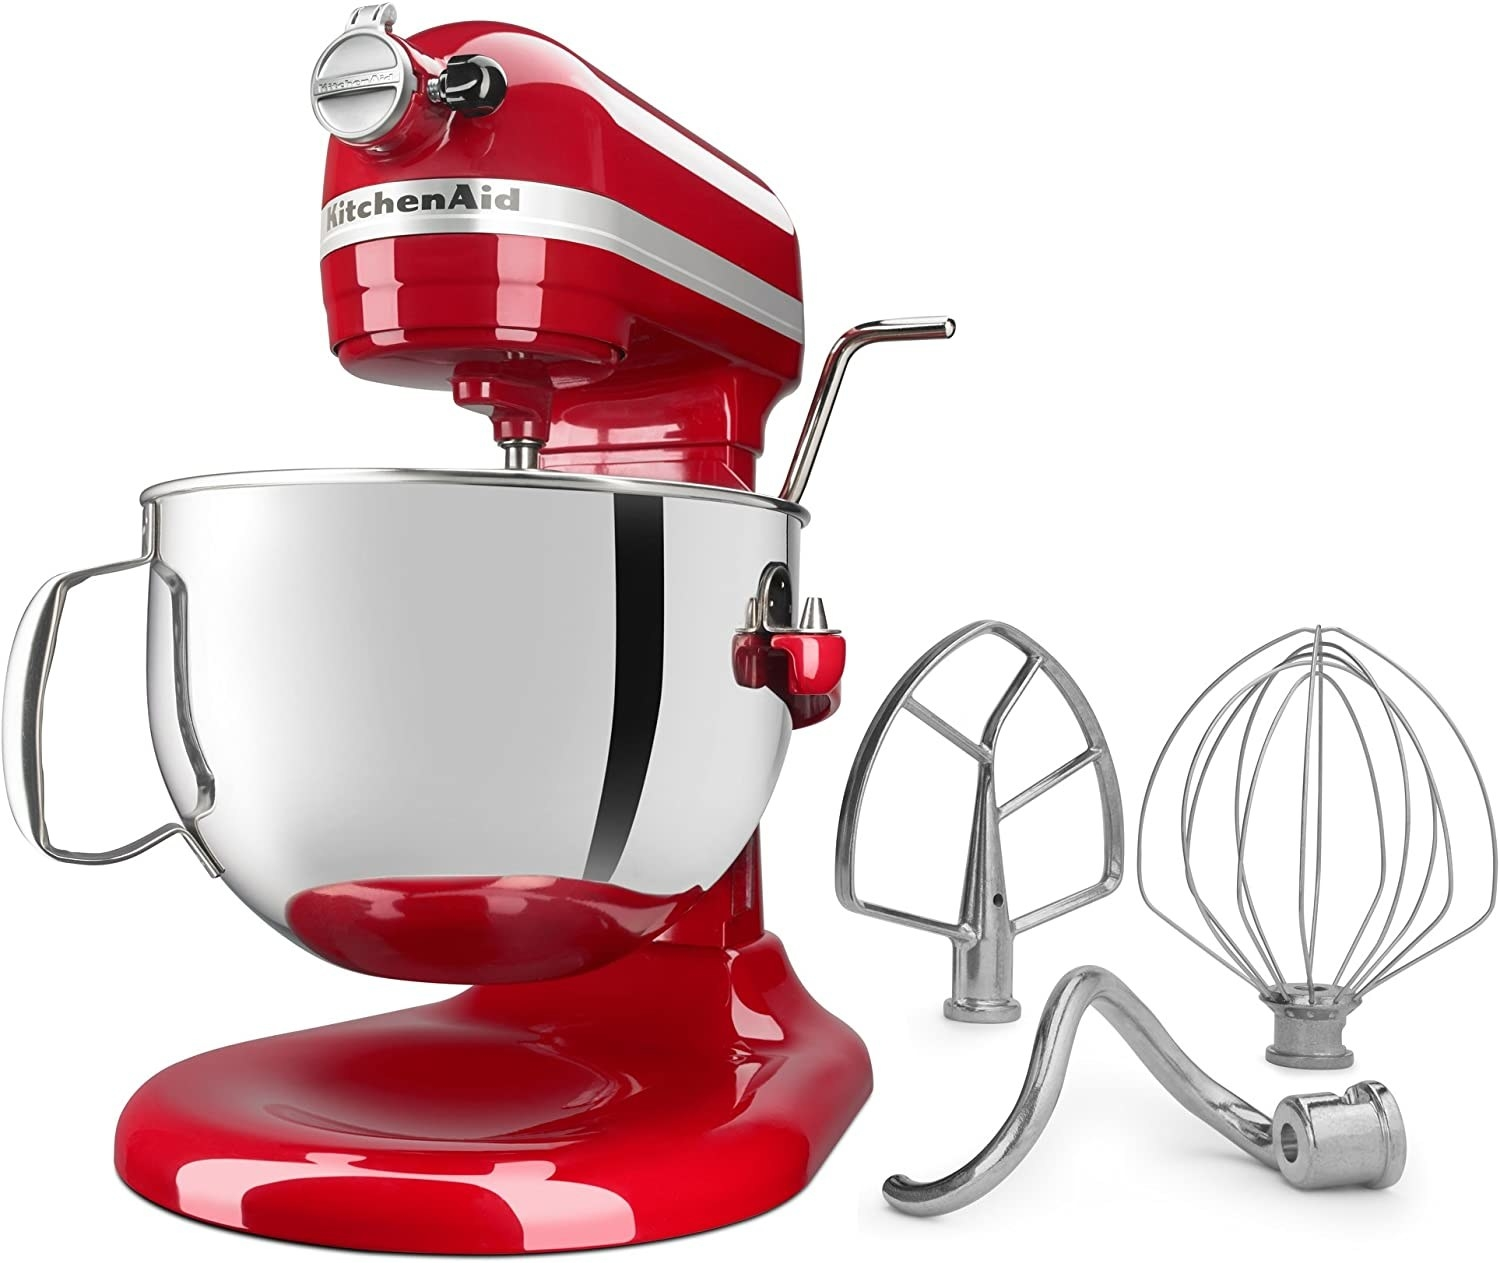 The stand mixer with its included attachments